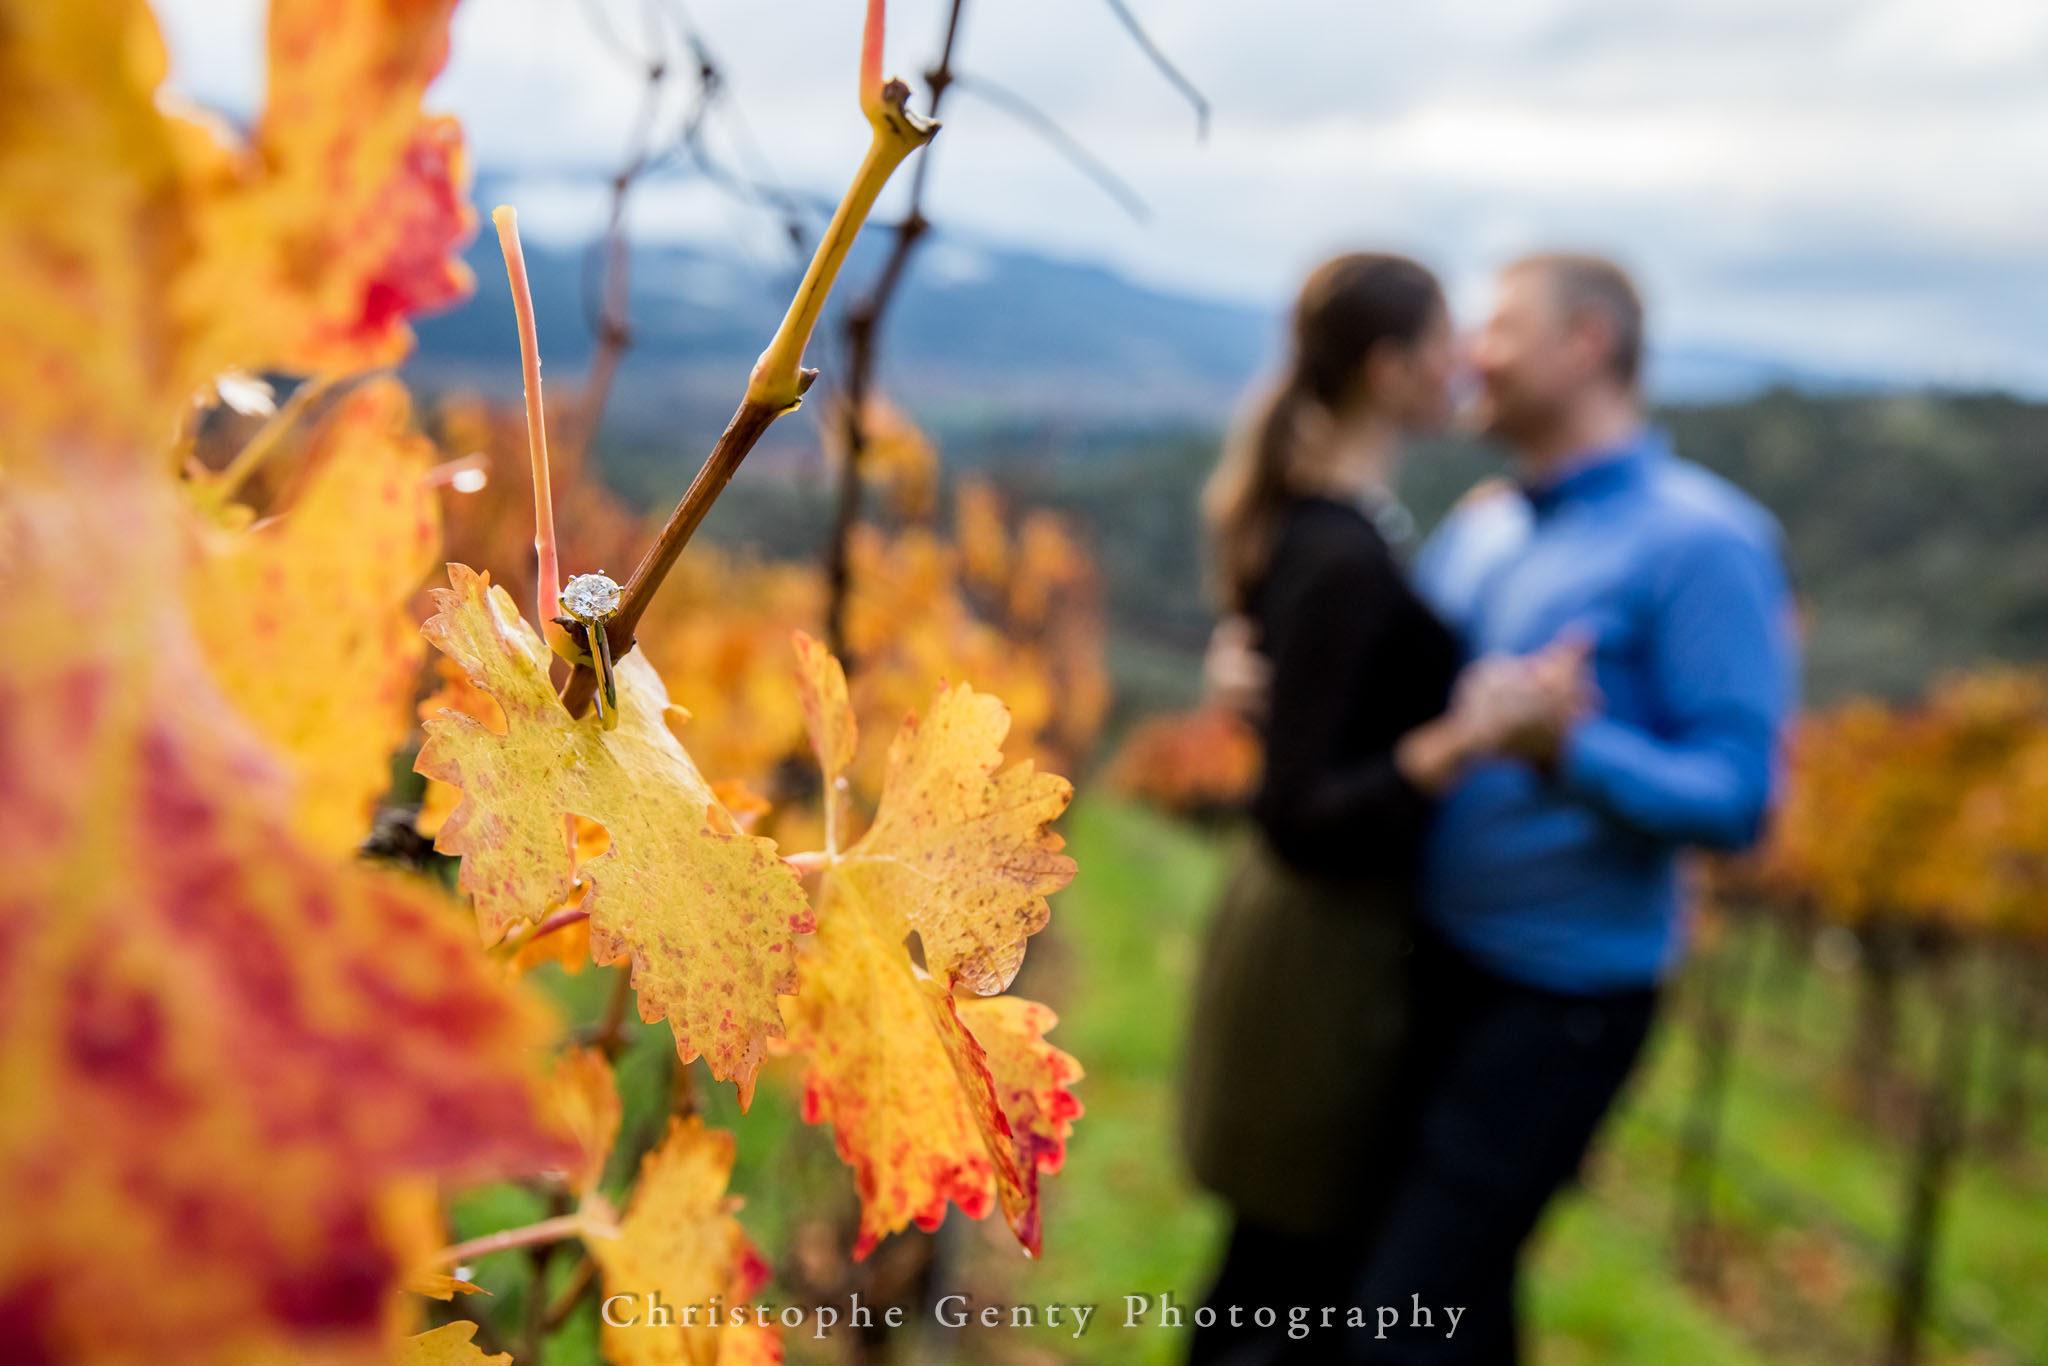 Napa-Marriage-Proposal-Photography-126